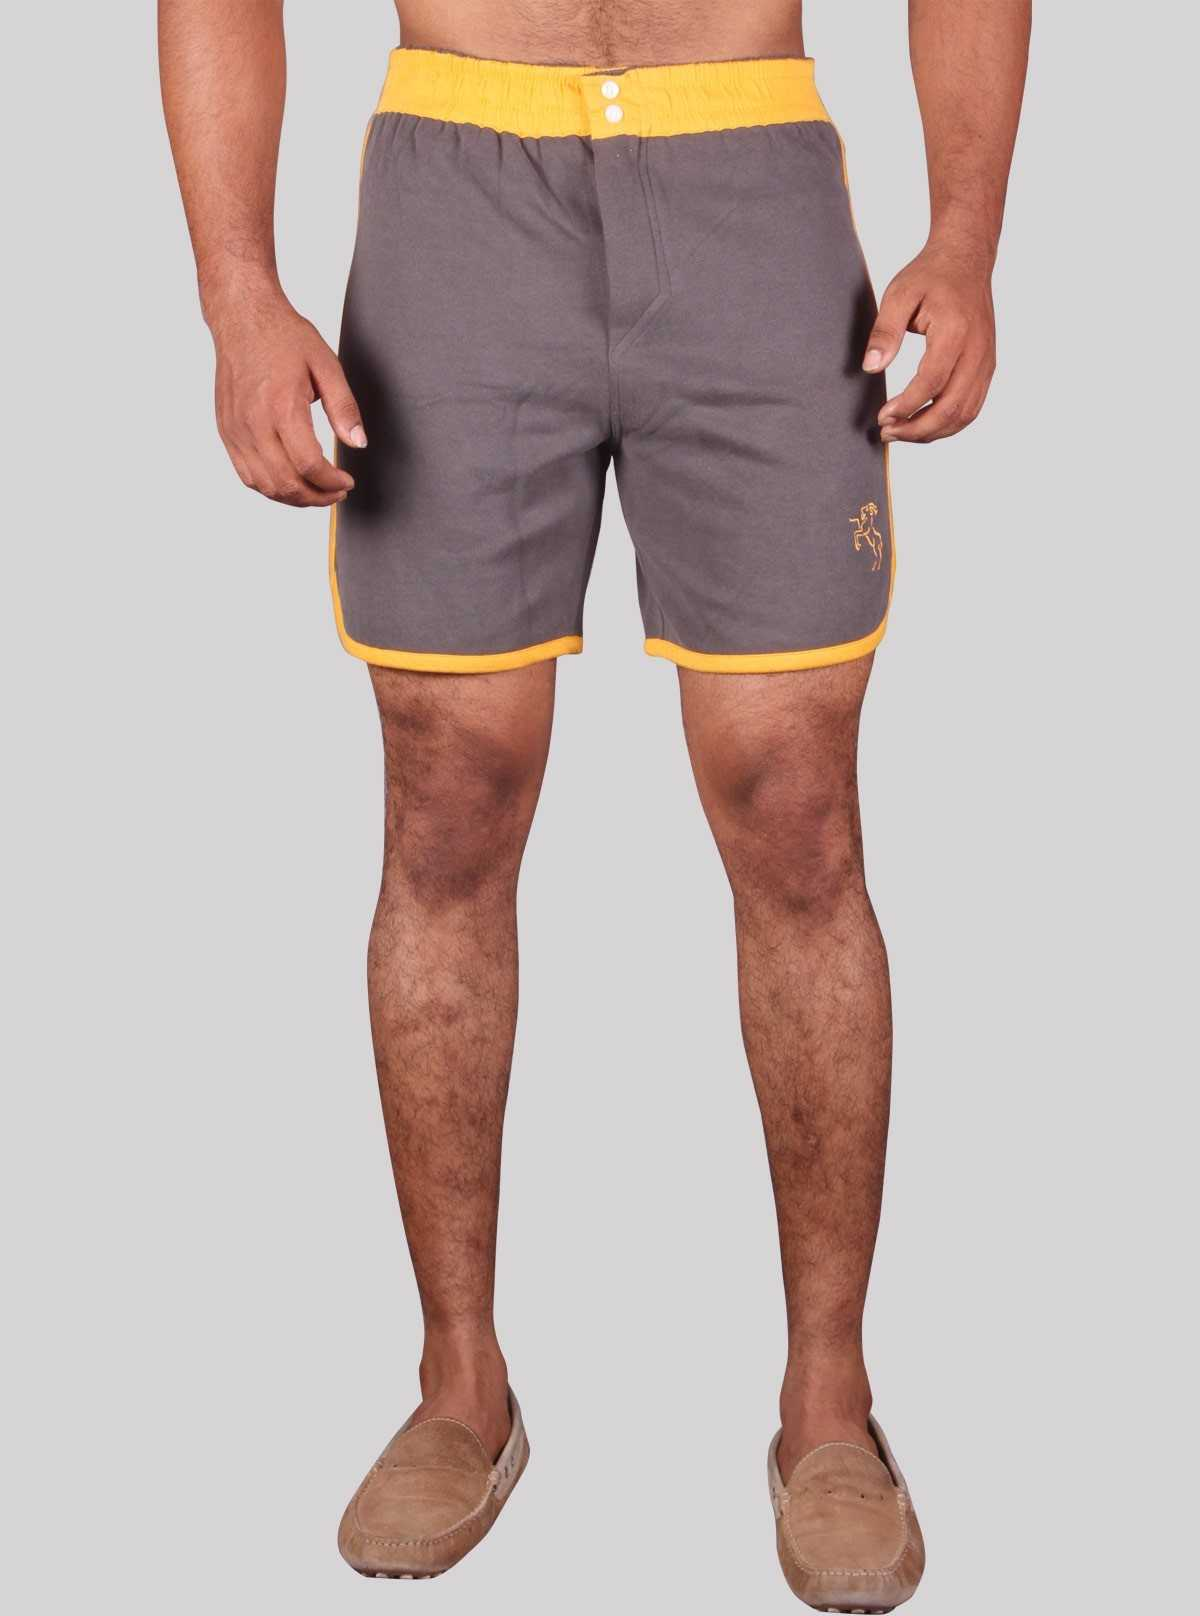 Yellow Contrast Fleece Shorts Boer and Fitch - 1